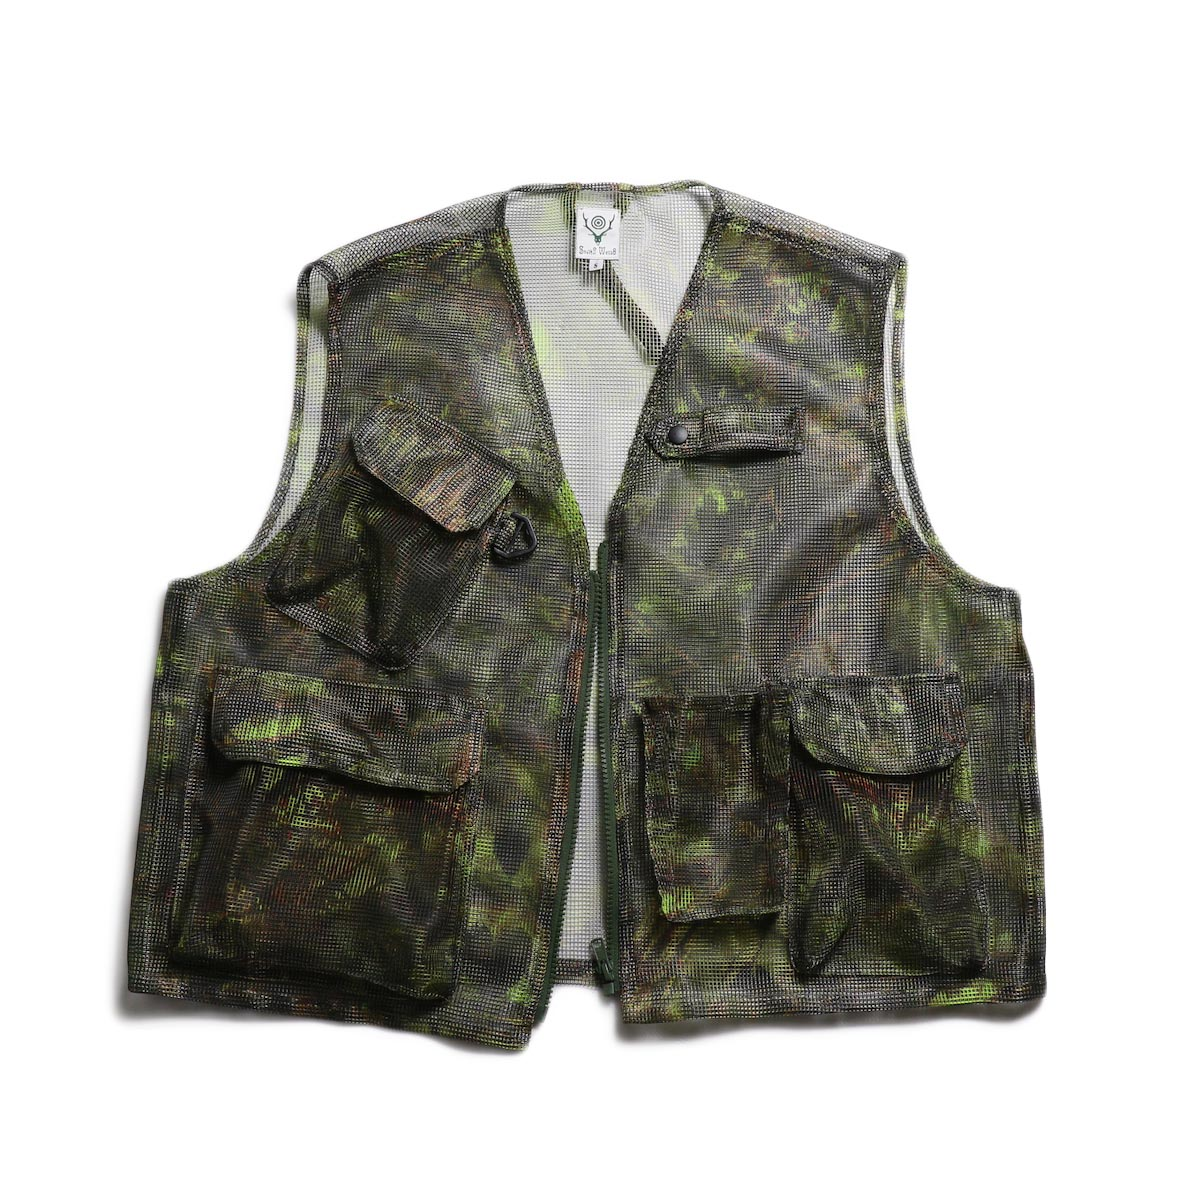 SOUTH2 WEST8 / Mesh Bush Vest -Poly Mesh (S2W8 Camo)